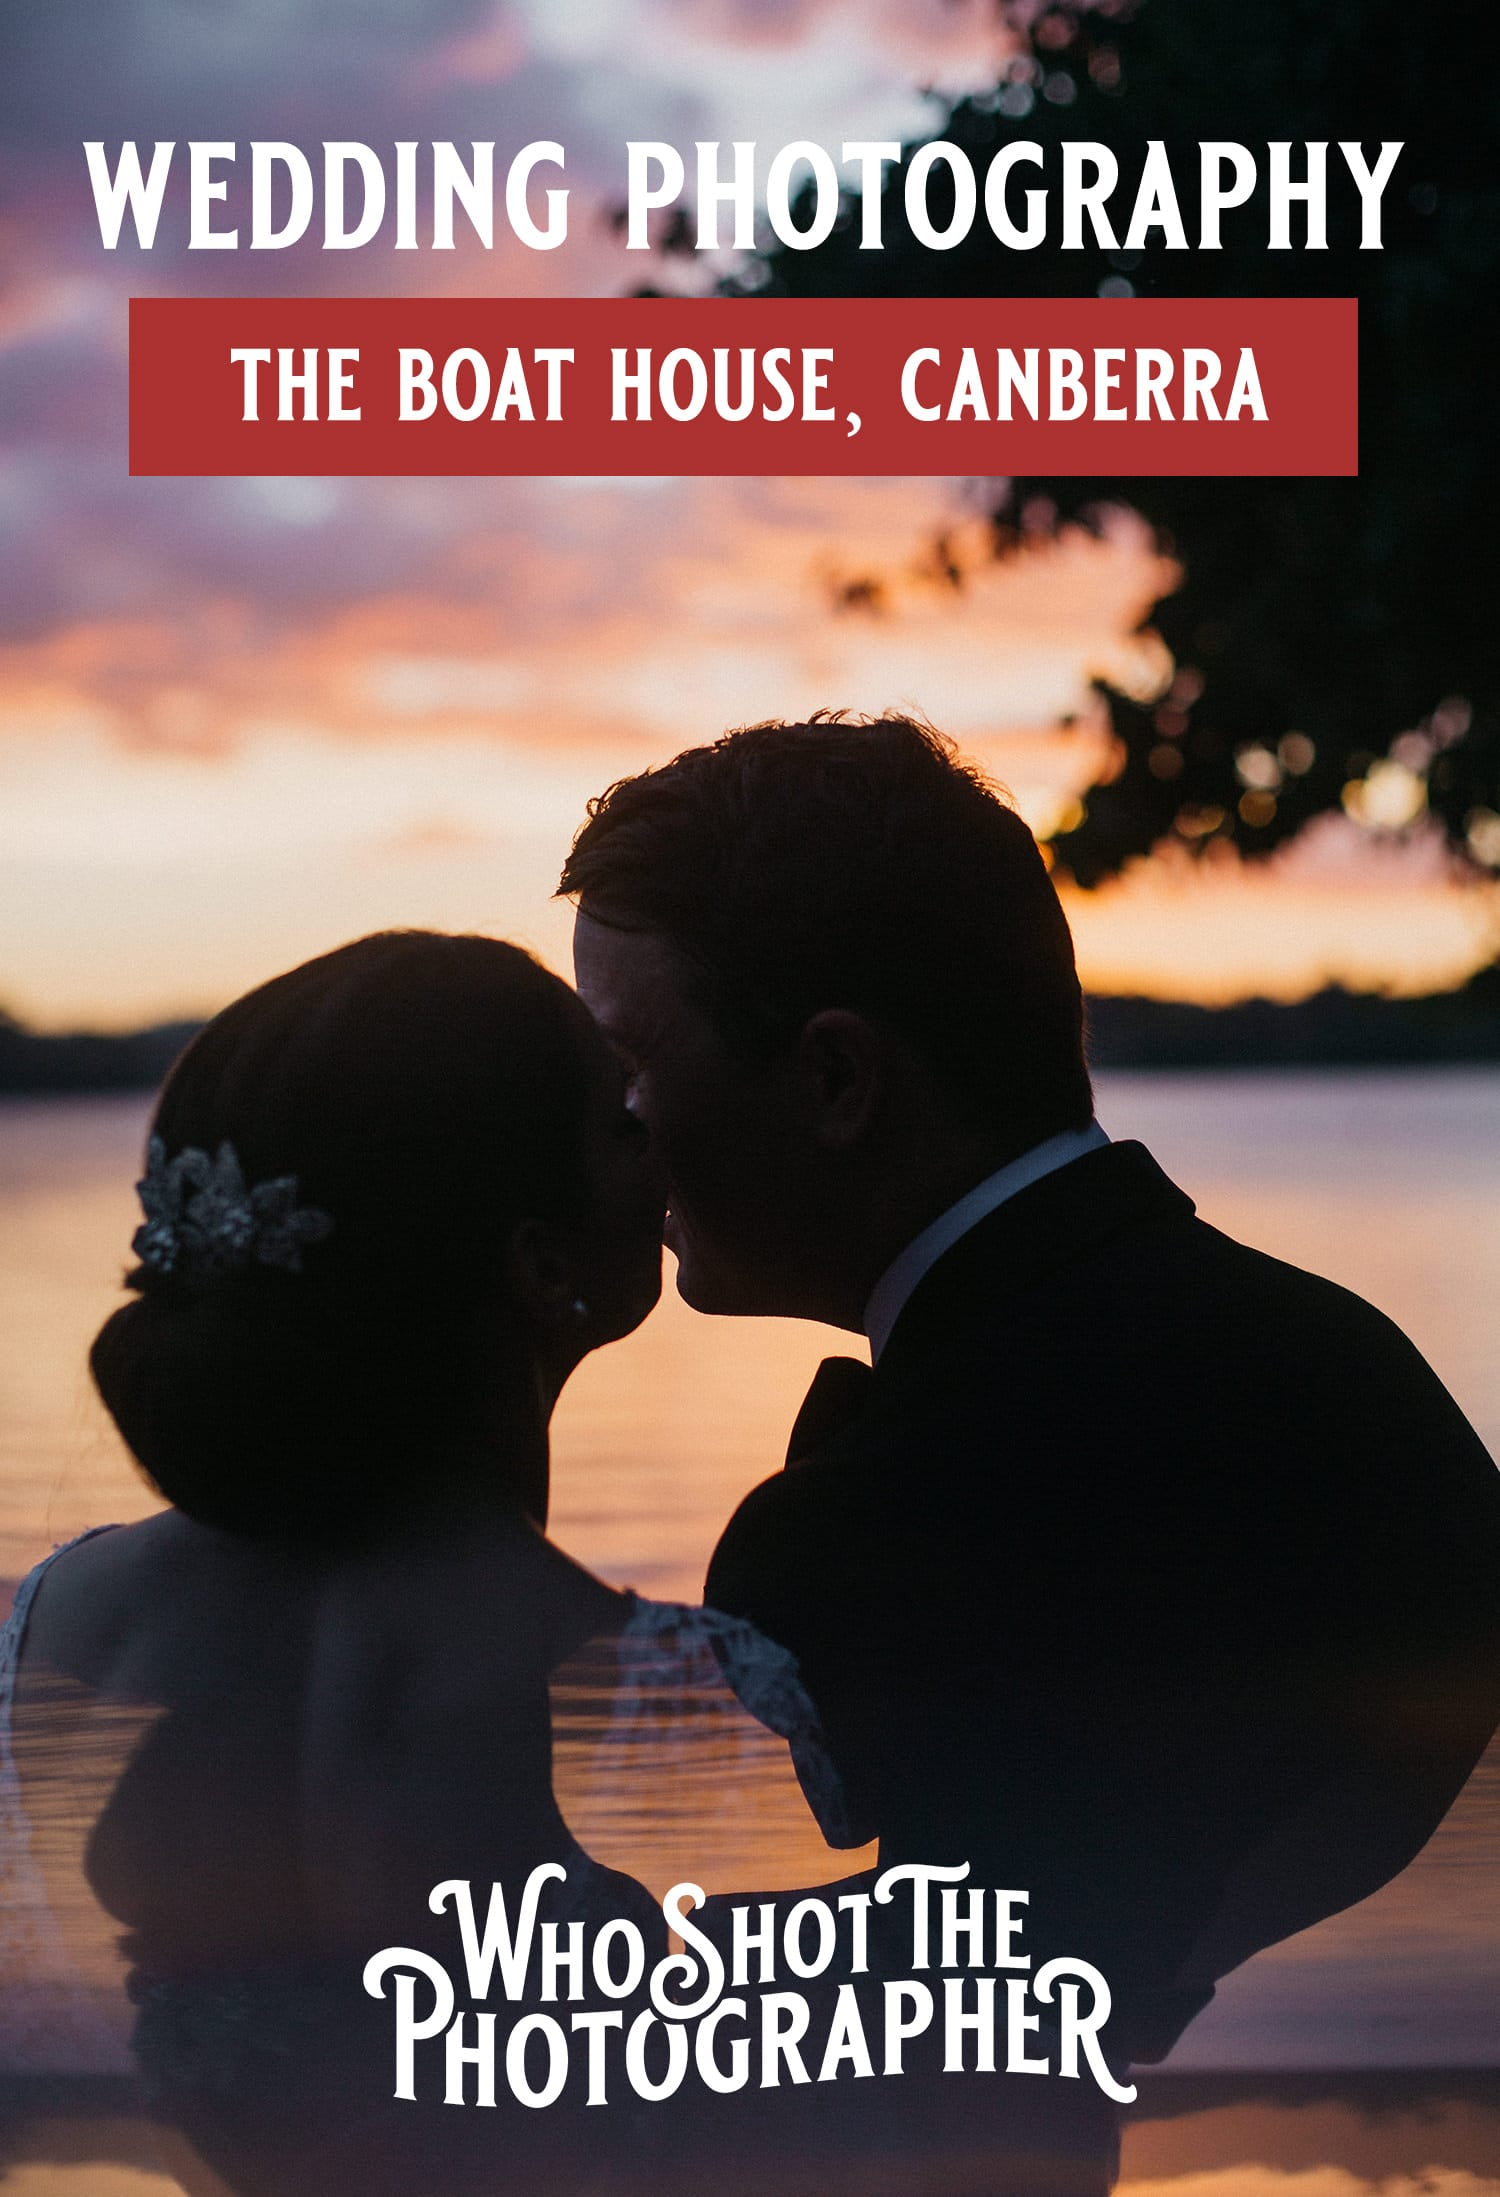 The Boat House Canberra Wedding, Rebecca and Jacob | The Boat House Canberra Wedding